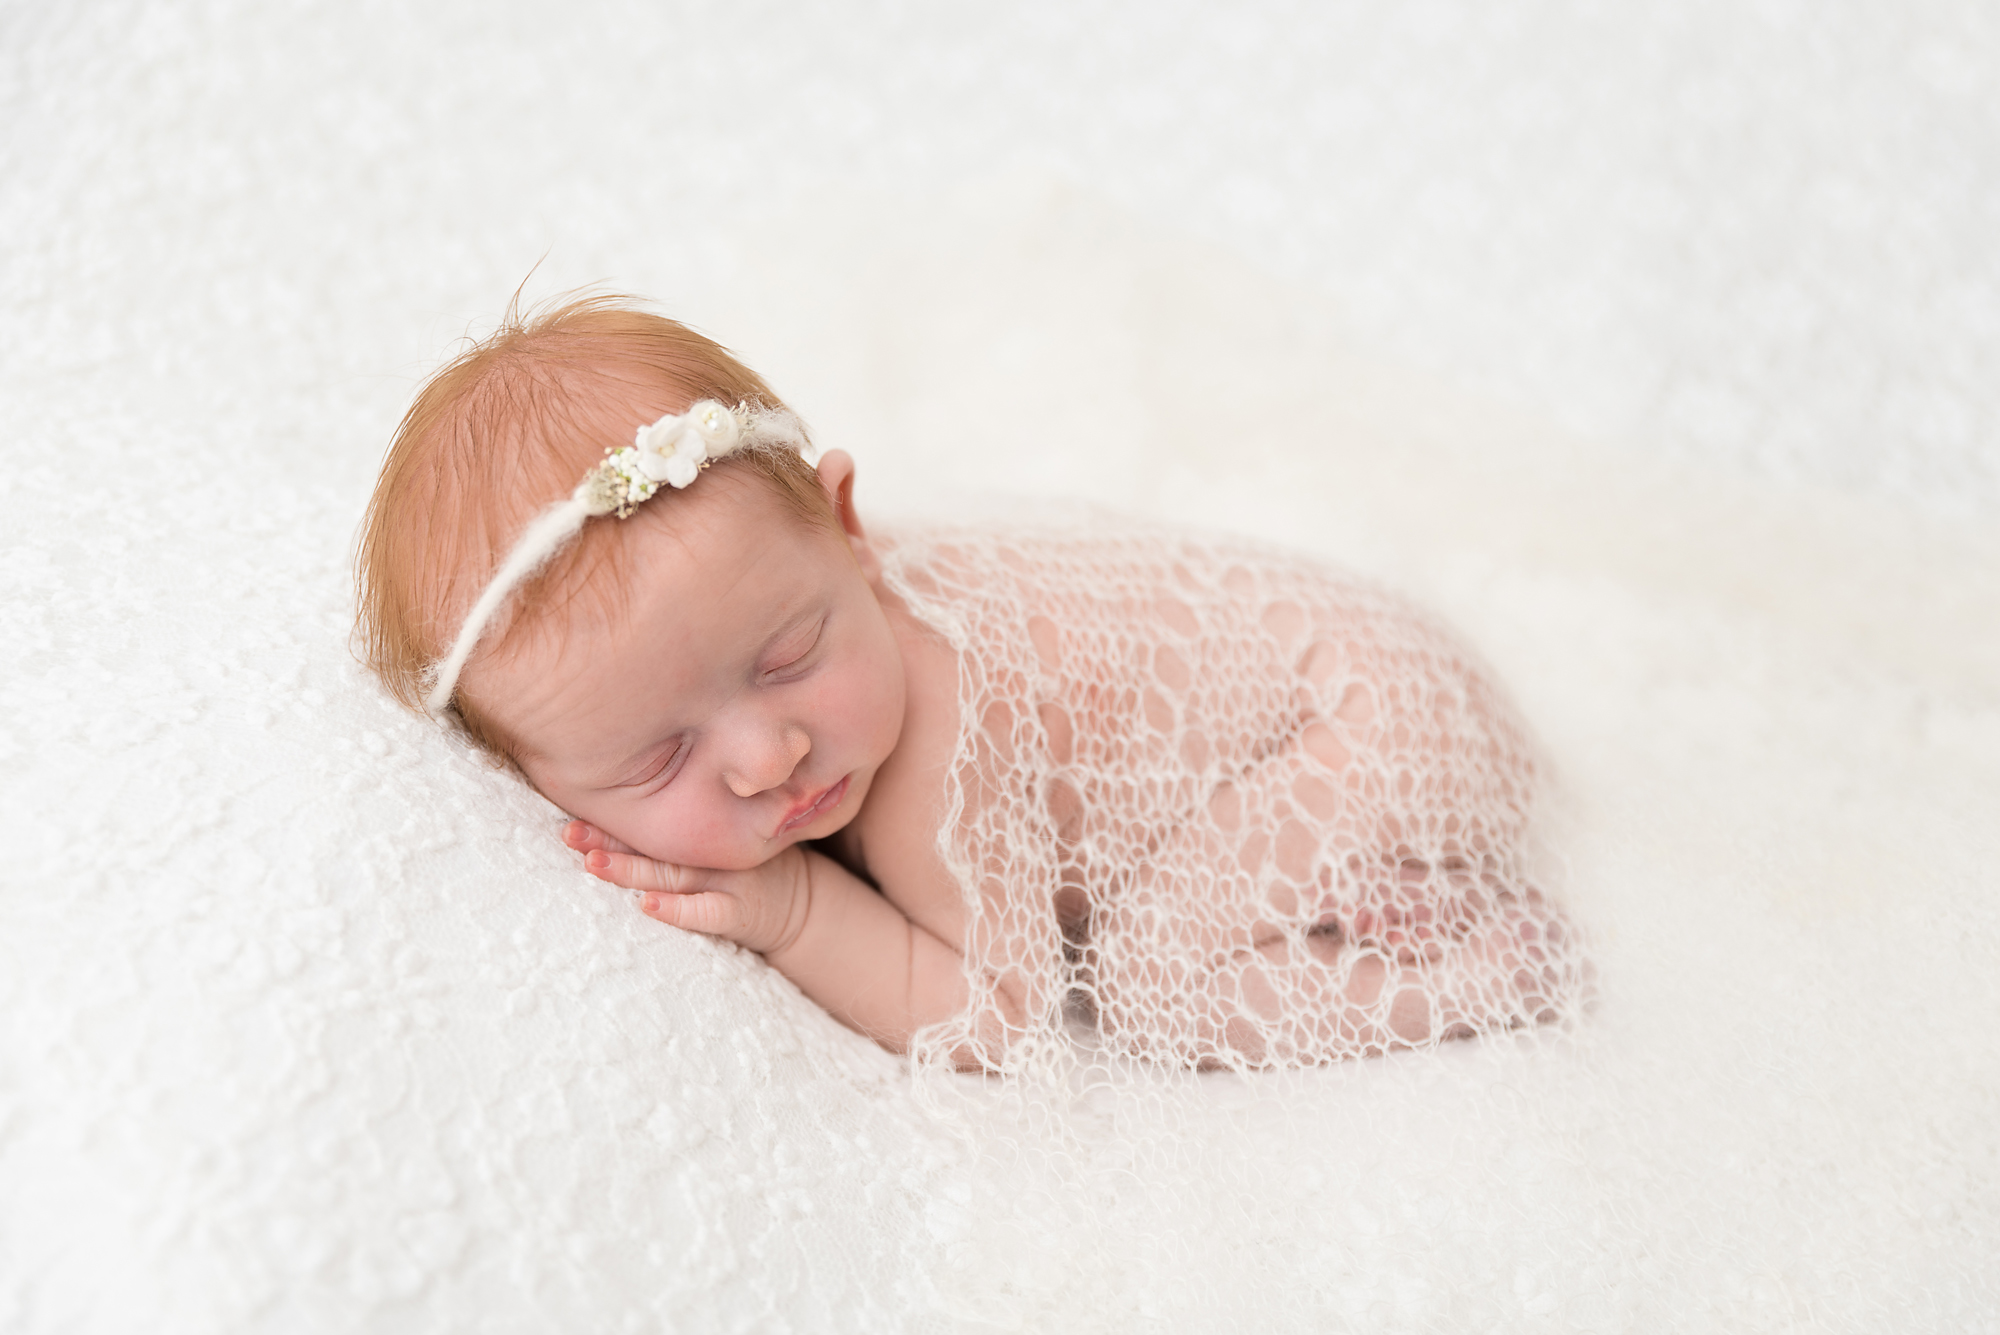 newborn-photographer-peterborough-cambridgeshire-13